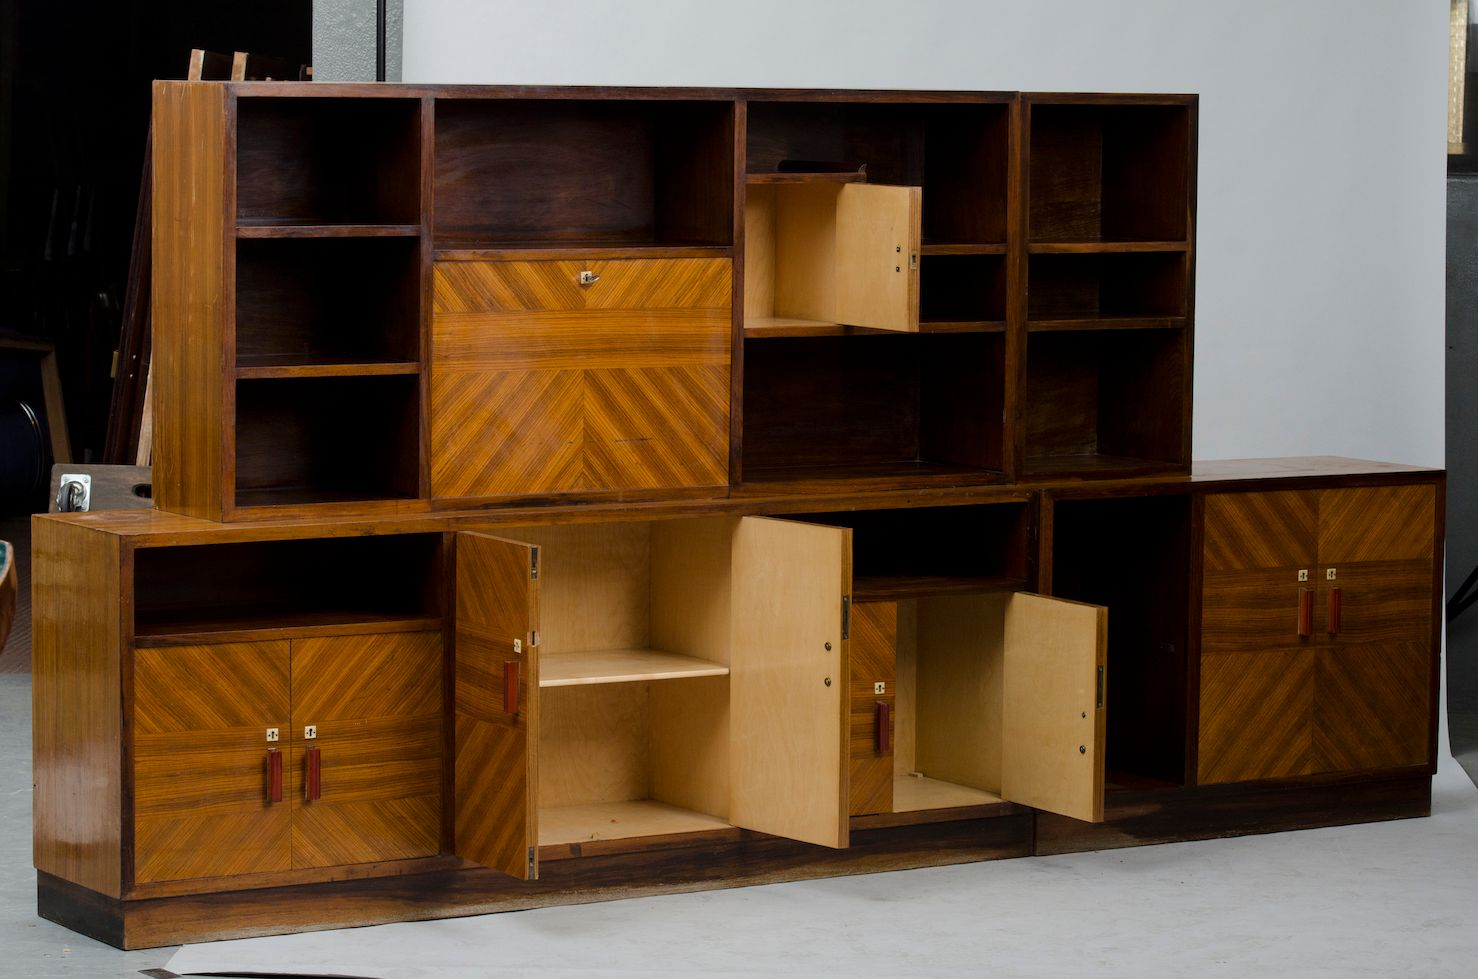 unit de biblioth que art d co en vente sur pamono. Black Bedroom Furniture Sets. Home Design Ideas